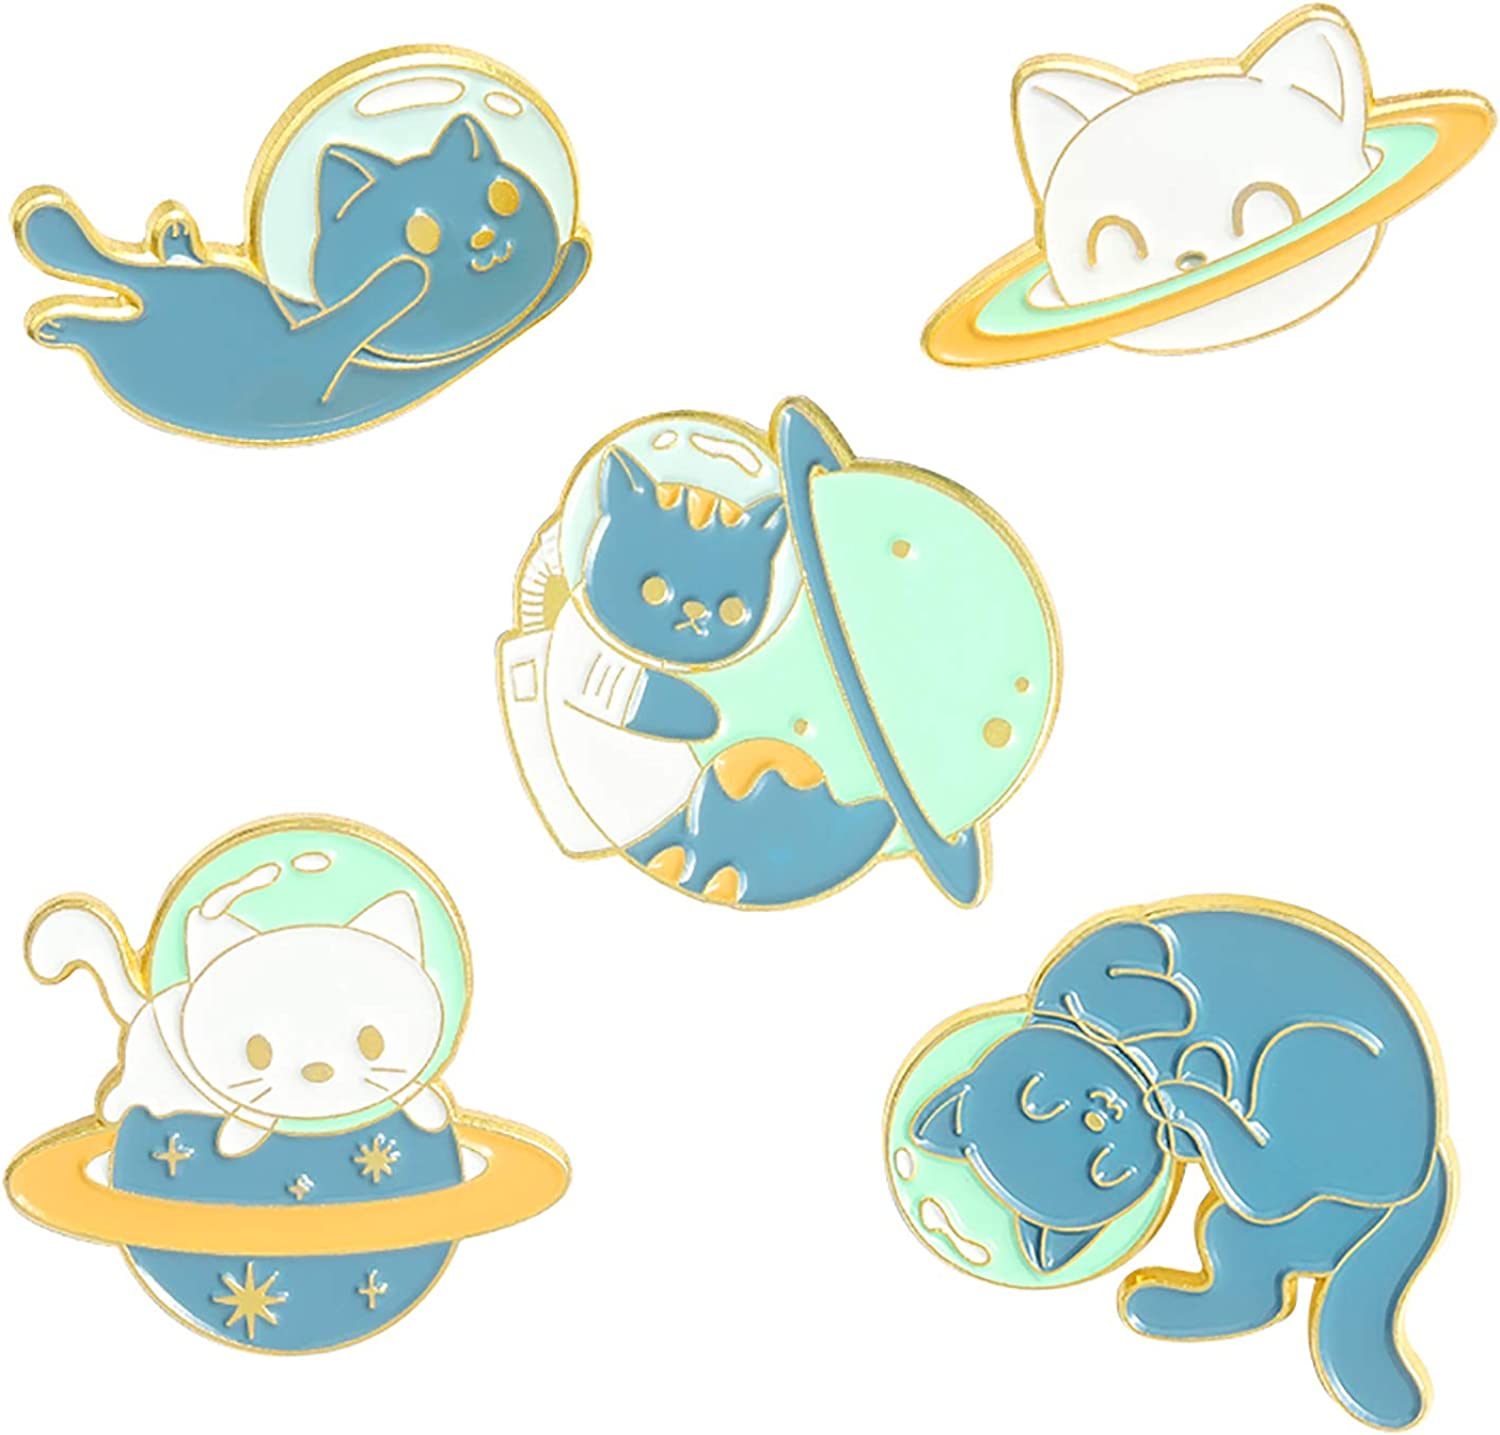 Space Cat Enamel Pins Set,Cute Animal Astronaut Lapel Pins for Women Girl Cartoon Planet Brooch Pin for Jackets Backpack Accessory